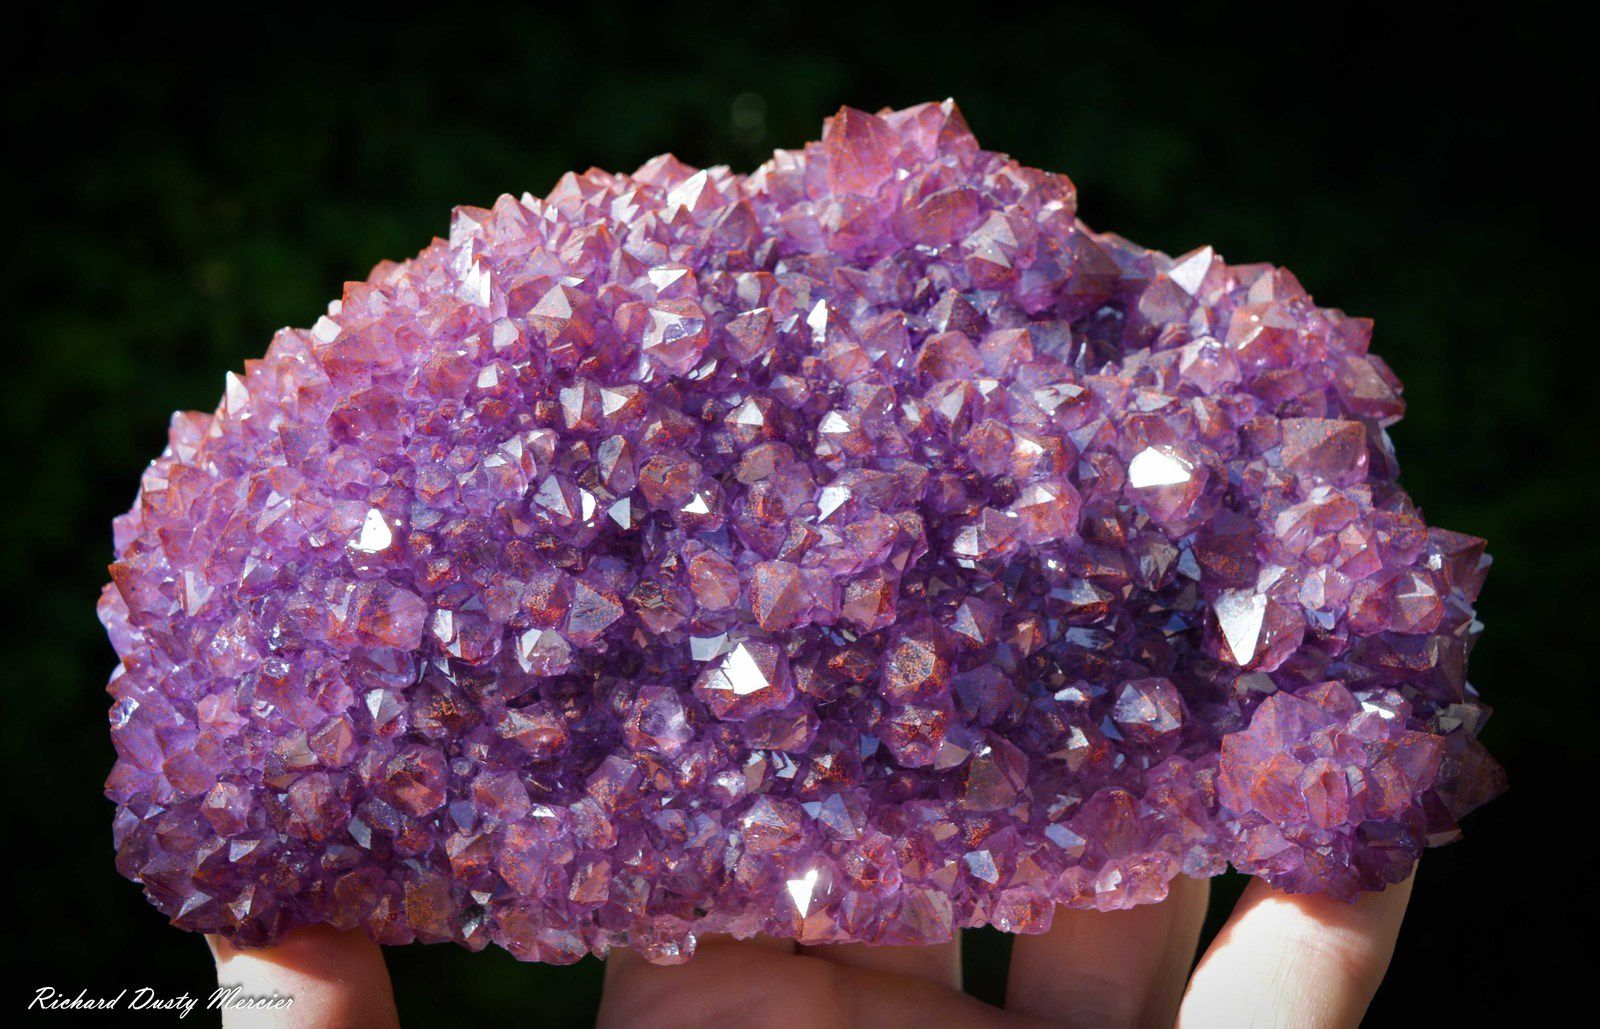 Amethyst flower from Canada (Specimen and Photo: Richard Dusty Mercier)